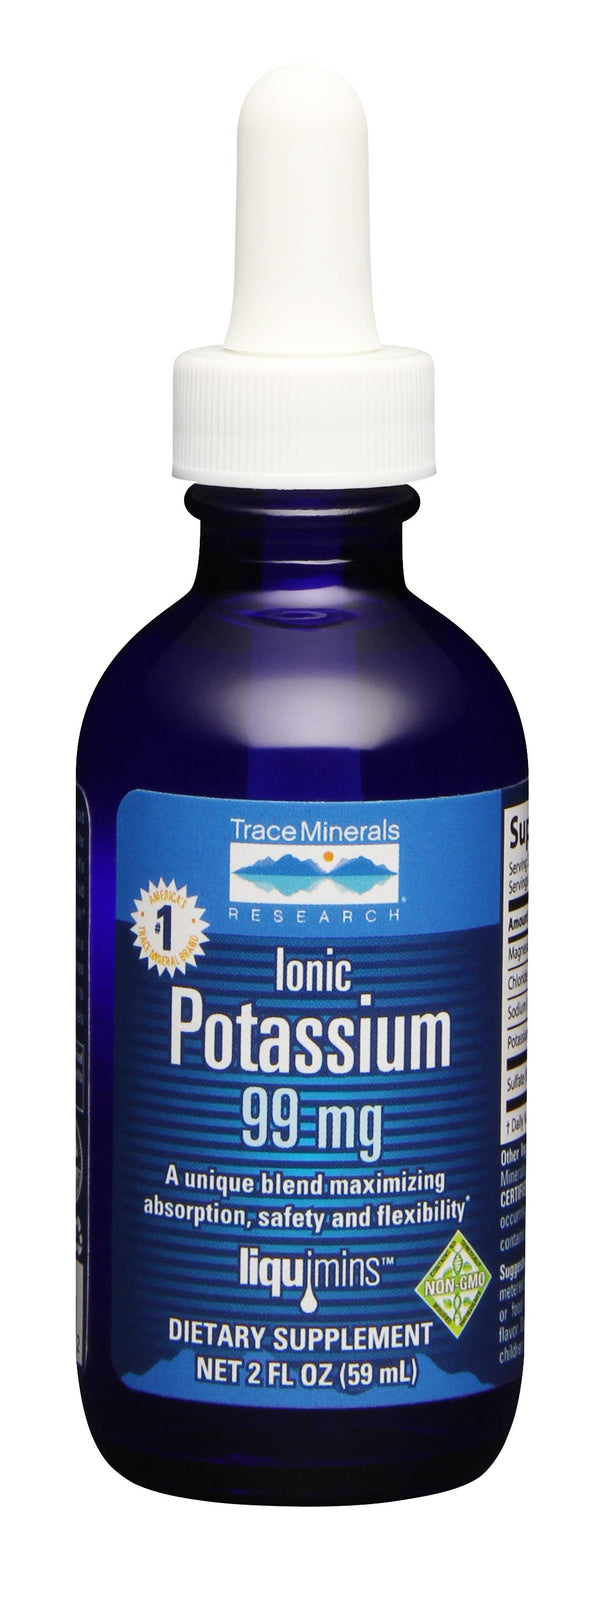 Trace Minerals Research Ionic Potassium